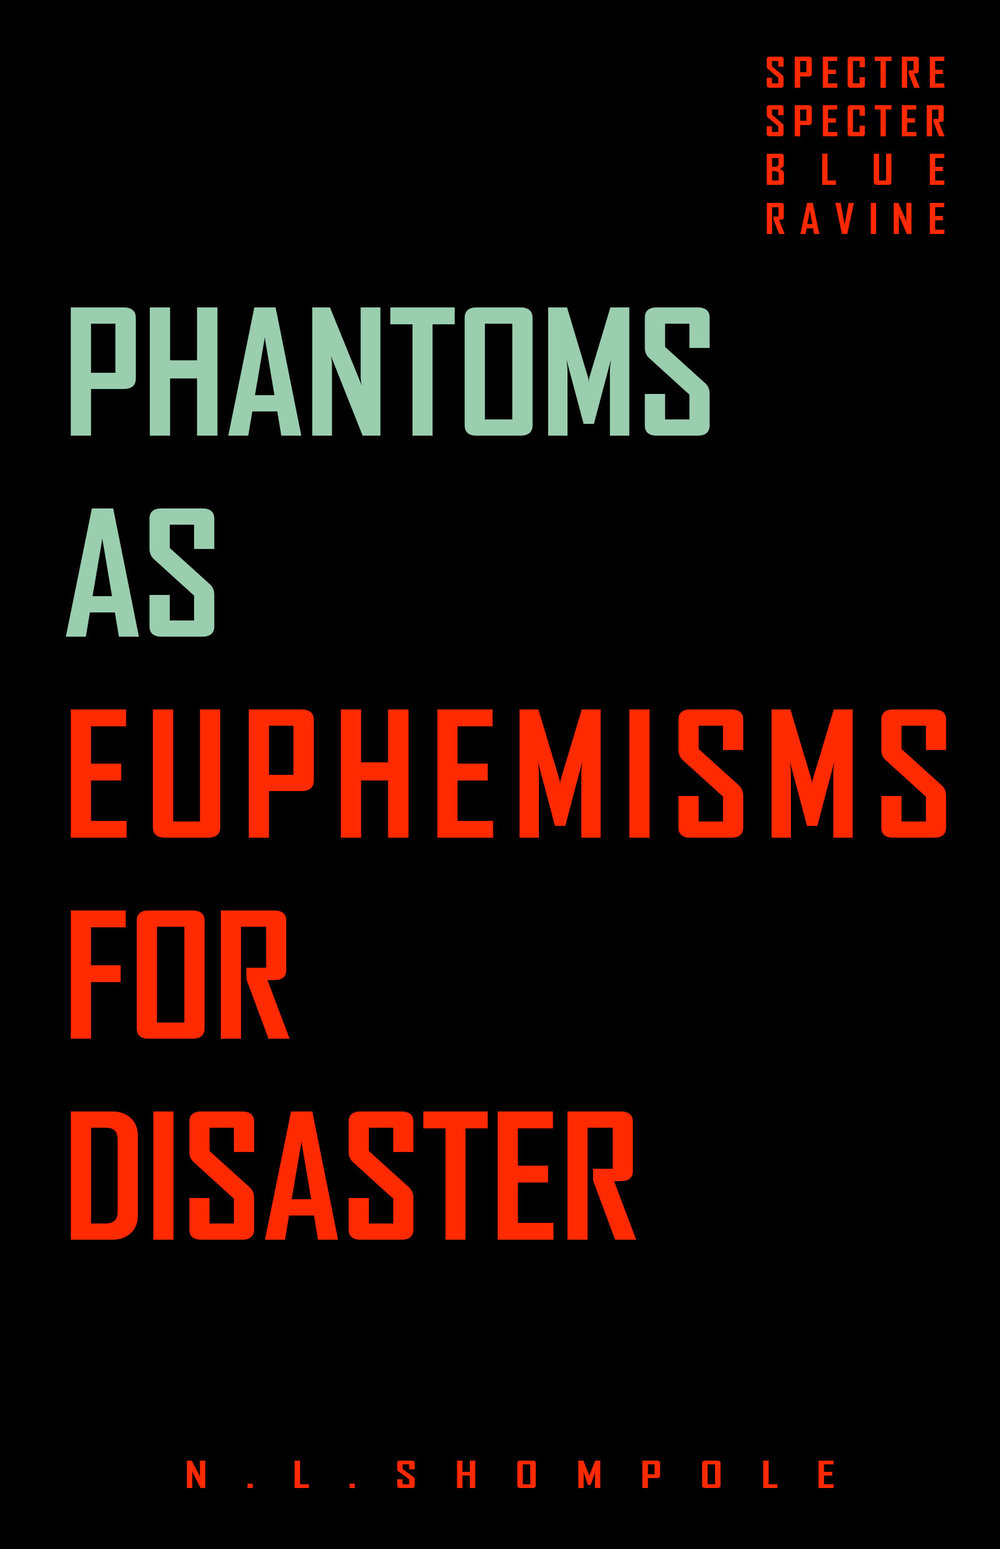 PHANTOMS AS EUPHEMISMS FOR DISASTER BY N.L. SHOMPOLE  As a collection of poetry and prose,  Phantoms as Euphemisms for Disaster  explores the many faces of loss. Not only the loss of love, but loss of language, culture, identity and self. The book seamlessly navigates the silences between harrowing conversations, to realizations about growing up, about grief and how to deal with loss, to the reawakening of tenderness, hope and awareness in the innate power of self. This is a fantastic collection for anyone who appreciates a unique voice, beautiful language and the ache and sweetness that is living.